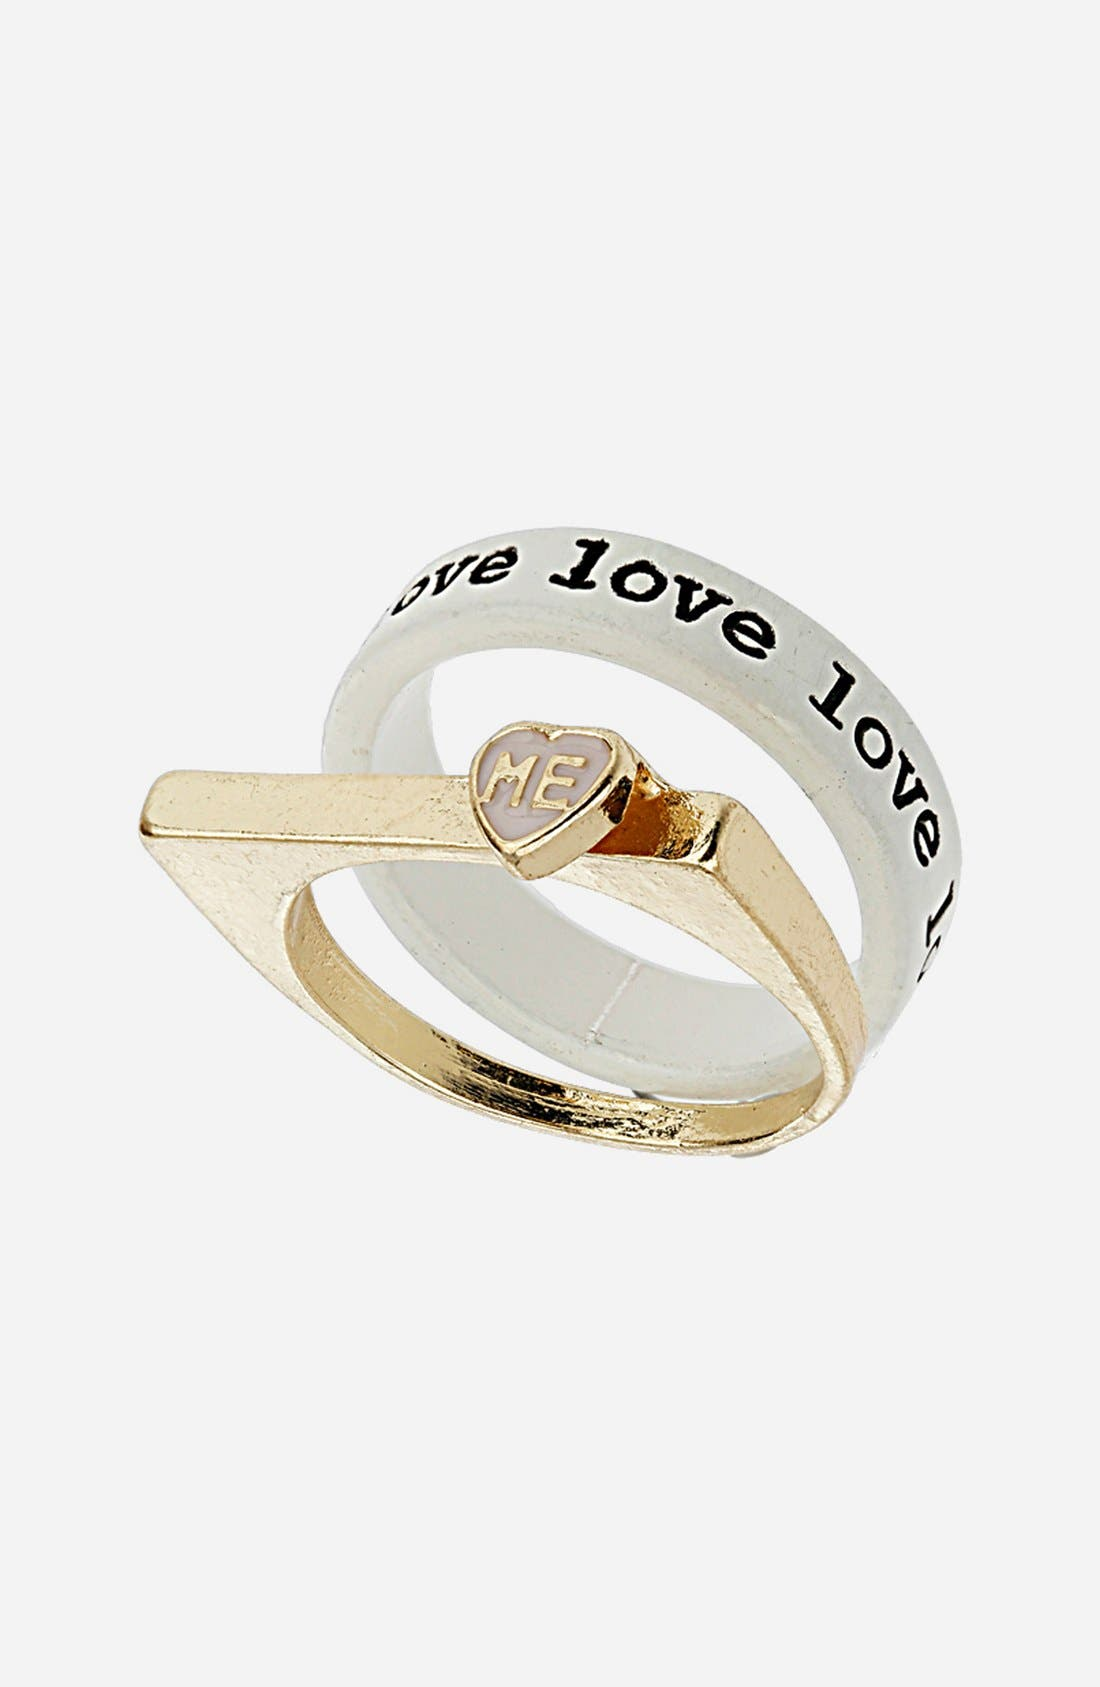 Alternate Image 1 Selected - Topshop 'Love Me' Rings (Set of 2)